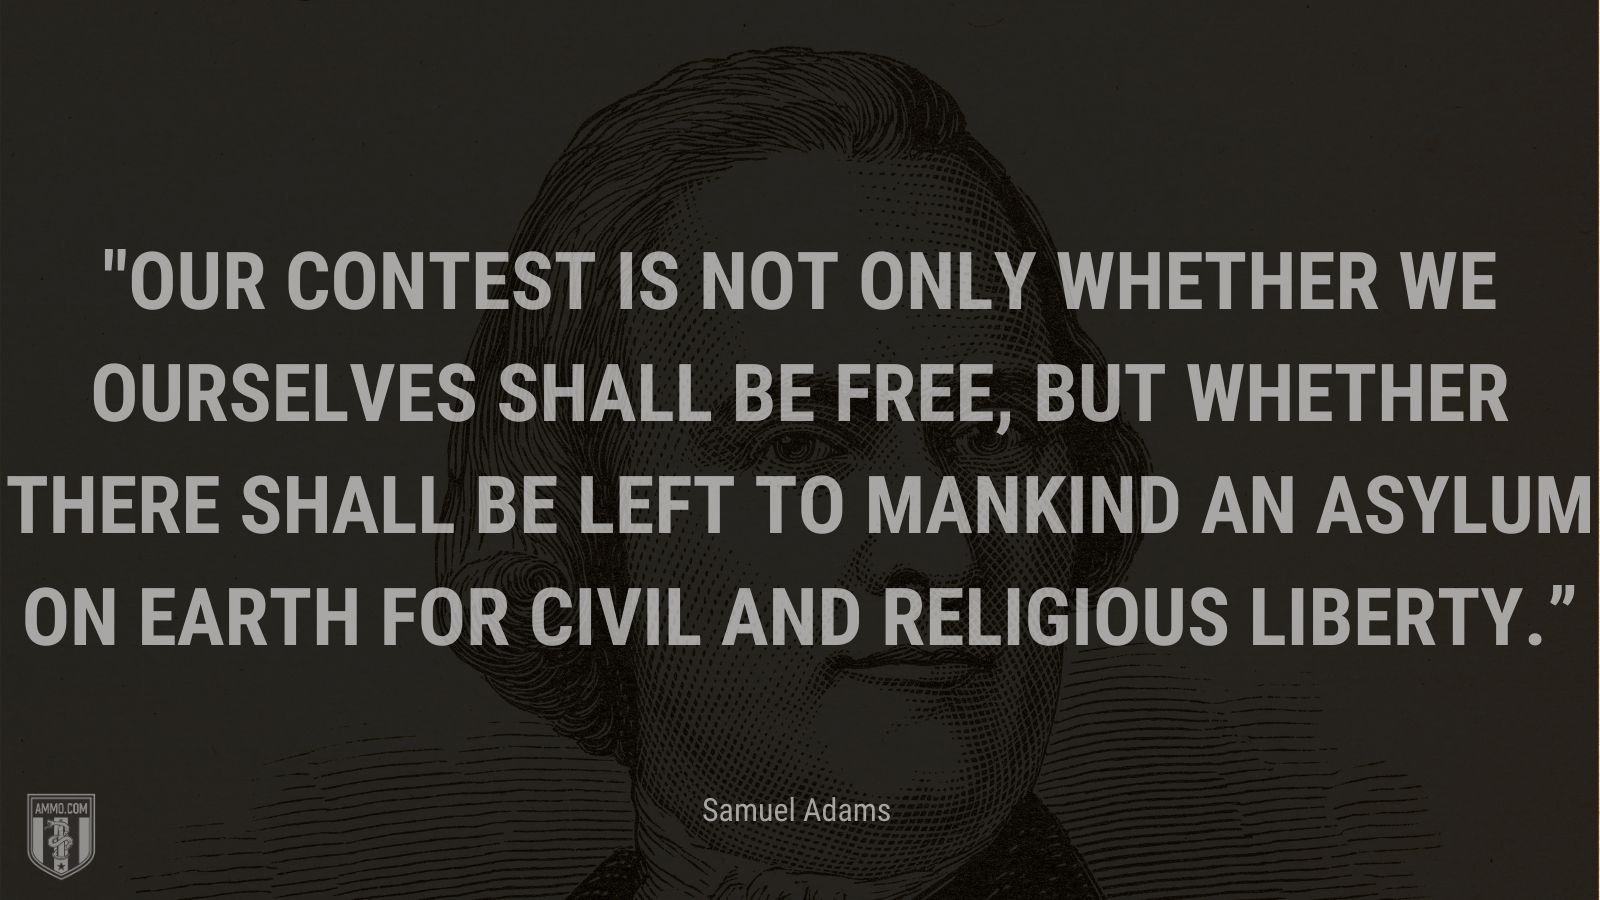 """""""Our contest is not only whether we ourselves shall be free, but whether there shall be left to mankind an asylum on earth for civil and religious liberty."""" - Samuel Adams"""